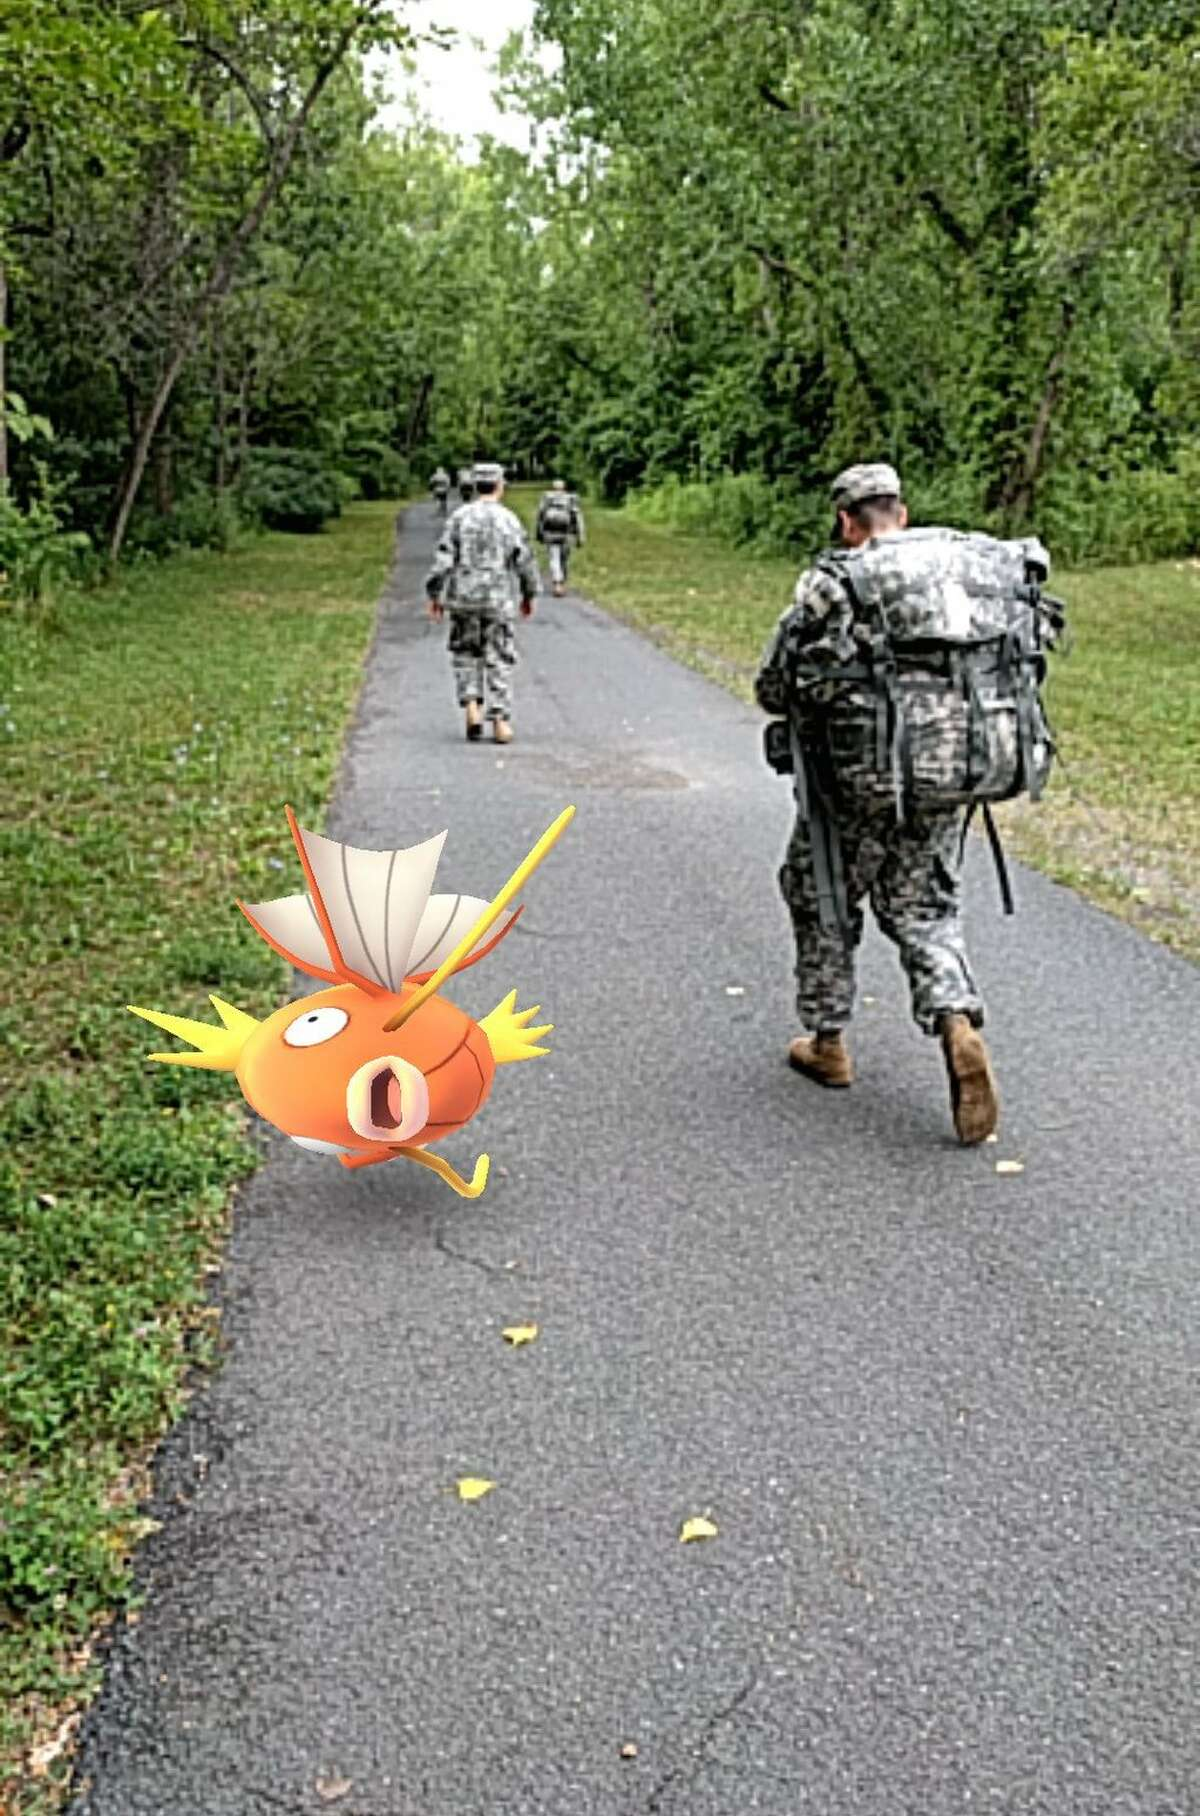 """National Guard soldier march past a virtual Magikarp over the weekend. The """"augmented reality"""" game Pokemon Go, which layers gameplay onto the physical world, became the top grossing app in the iPhone app store just days after its Wednesday release in the U.S., Australia and New Zealand. (Courtesy Photo)."""